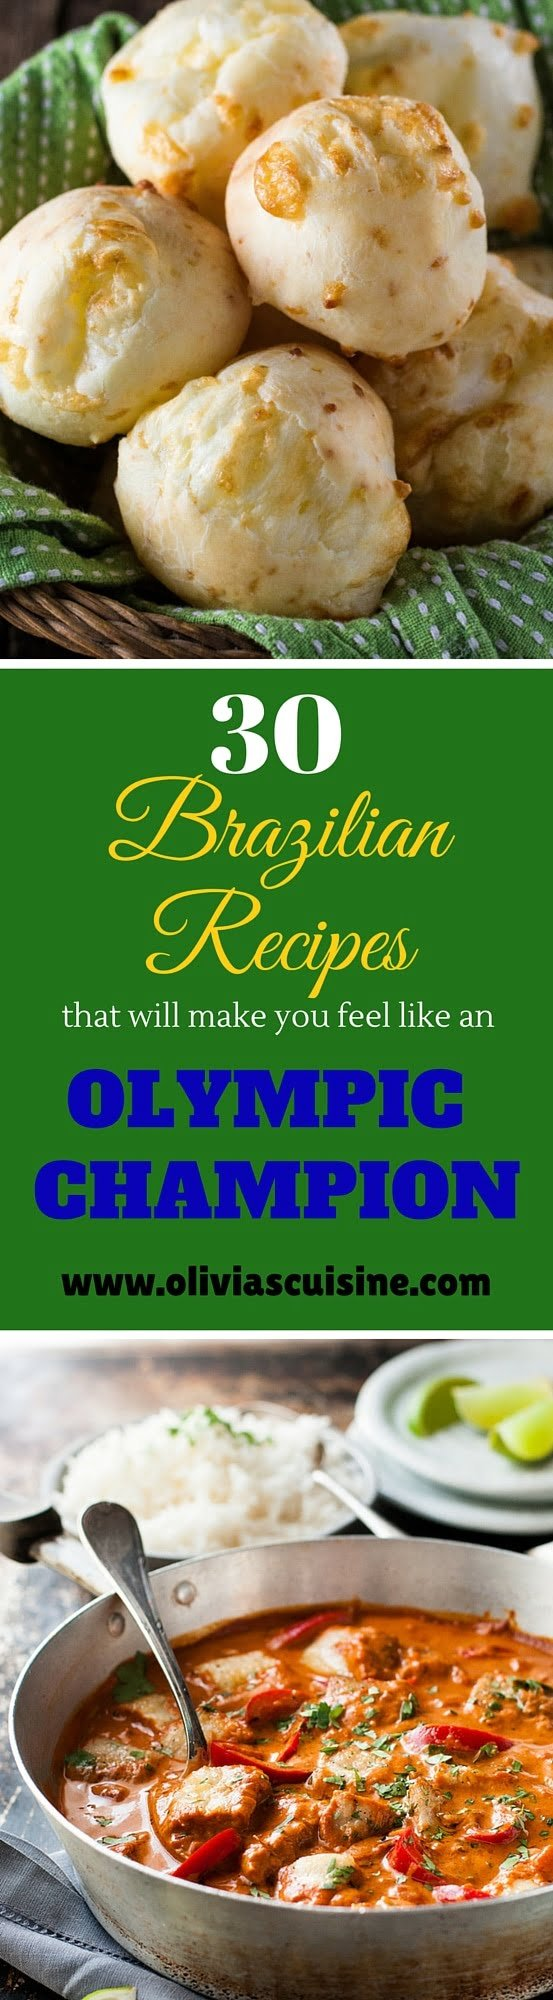 30 Authentic Brazilian Recipes That Will Make You Feel Like A Olympic Champion   www.oliviascuisine.com   The best of the best, these classic dishes of Brazilian cuisine will make you feel like you're in Rio!